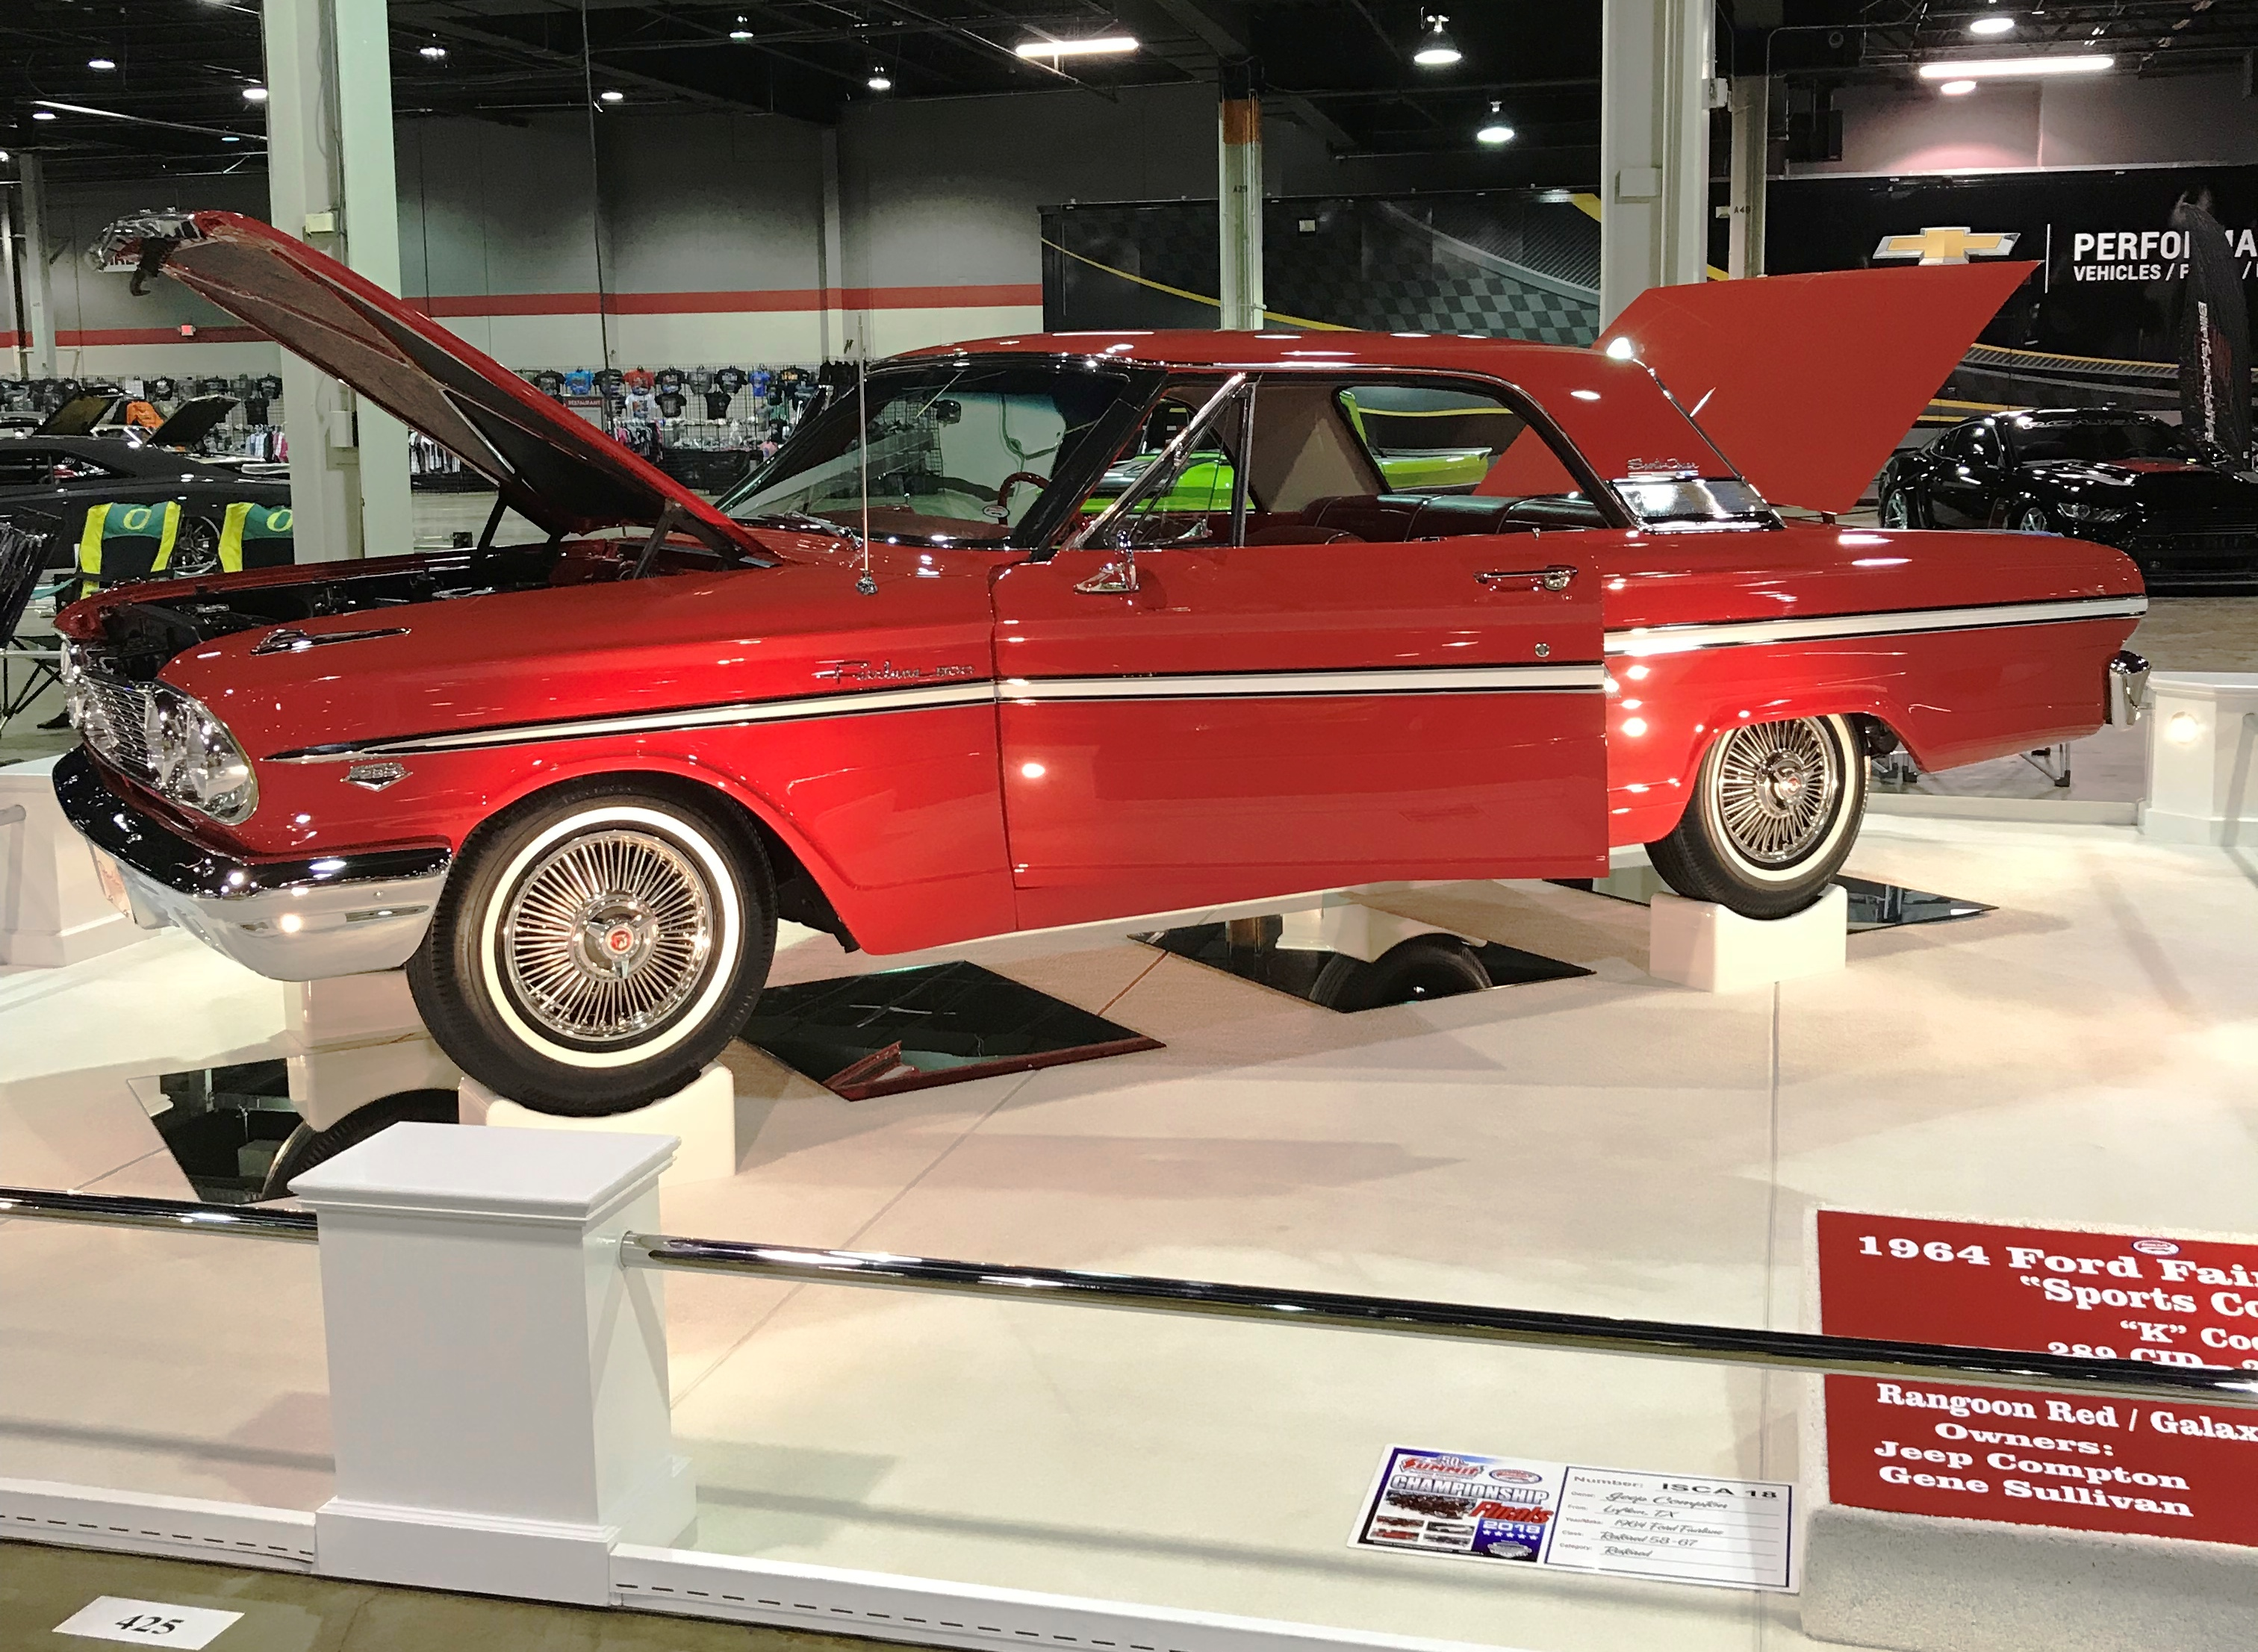 <p>2019 Restored Category Champion - Jeep Compton - Lufkin, TX - 1965 Ford Fairlane</p>